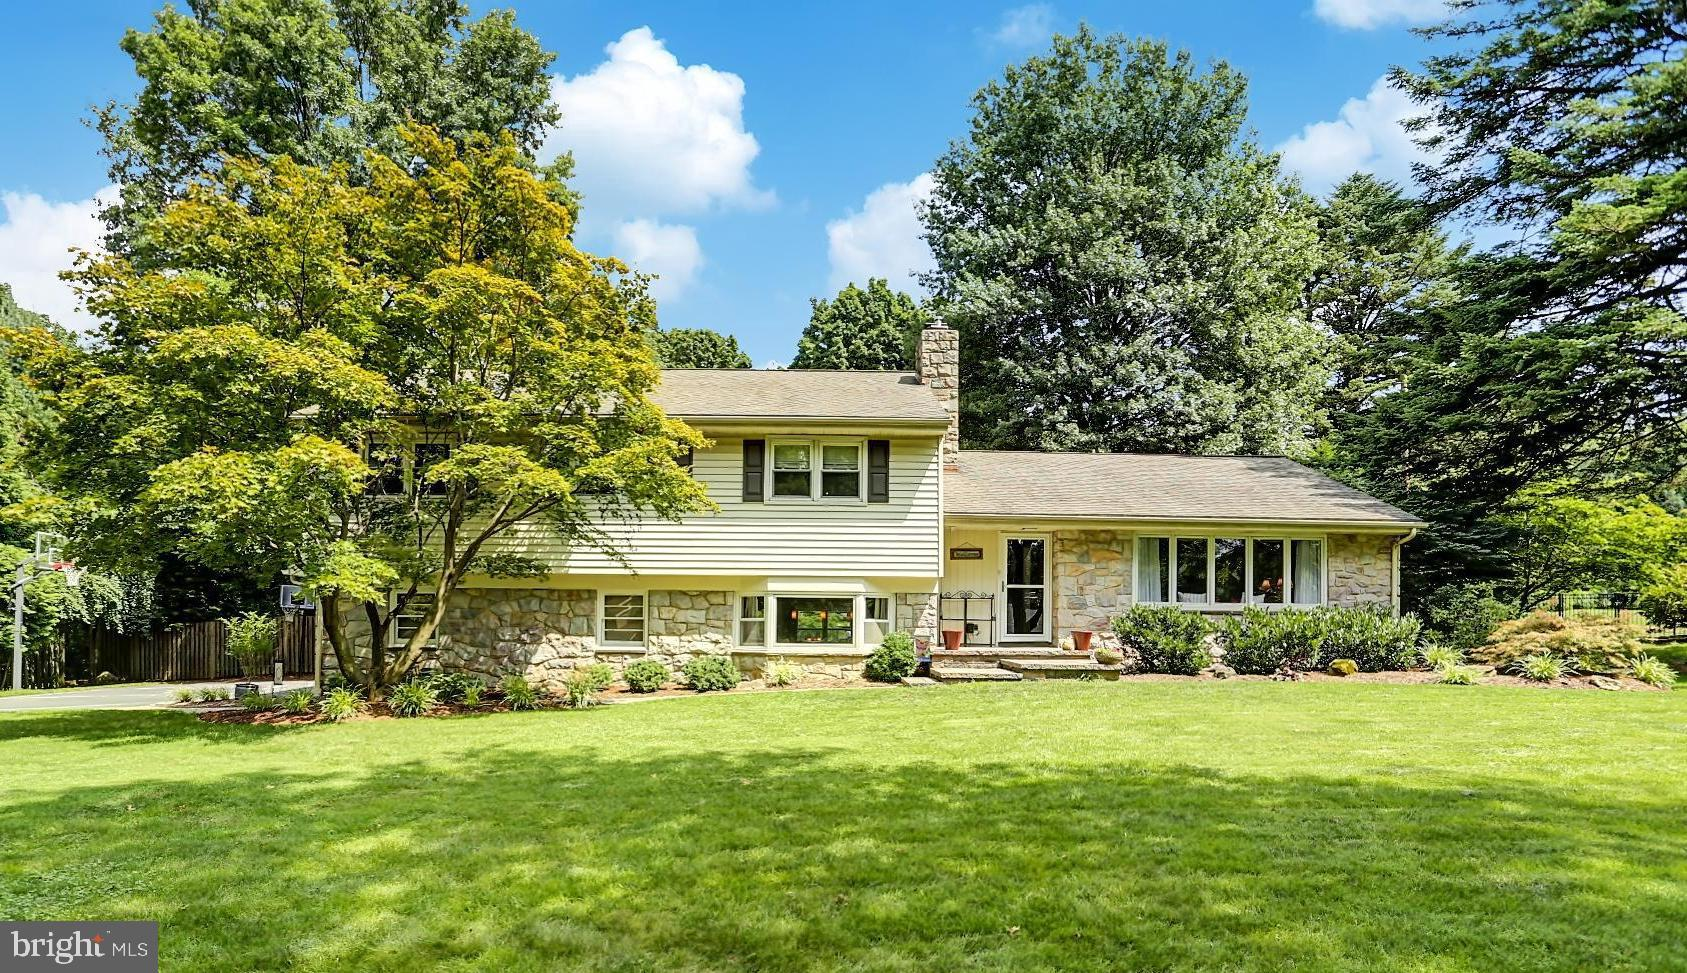 1543 ROSE VIRGINIA ROAD, WYOMISSING, PA 19610